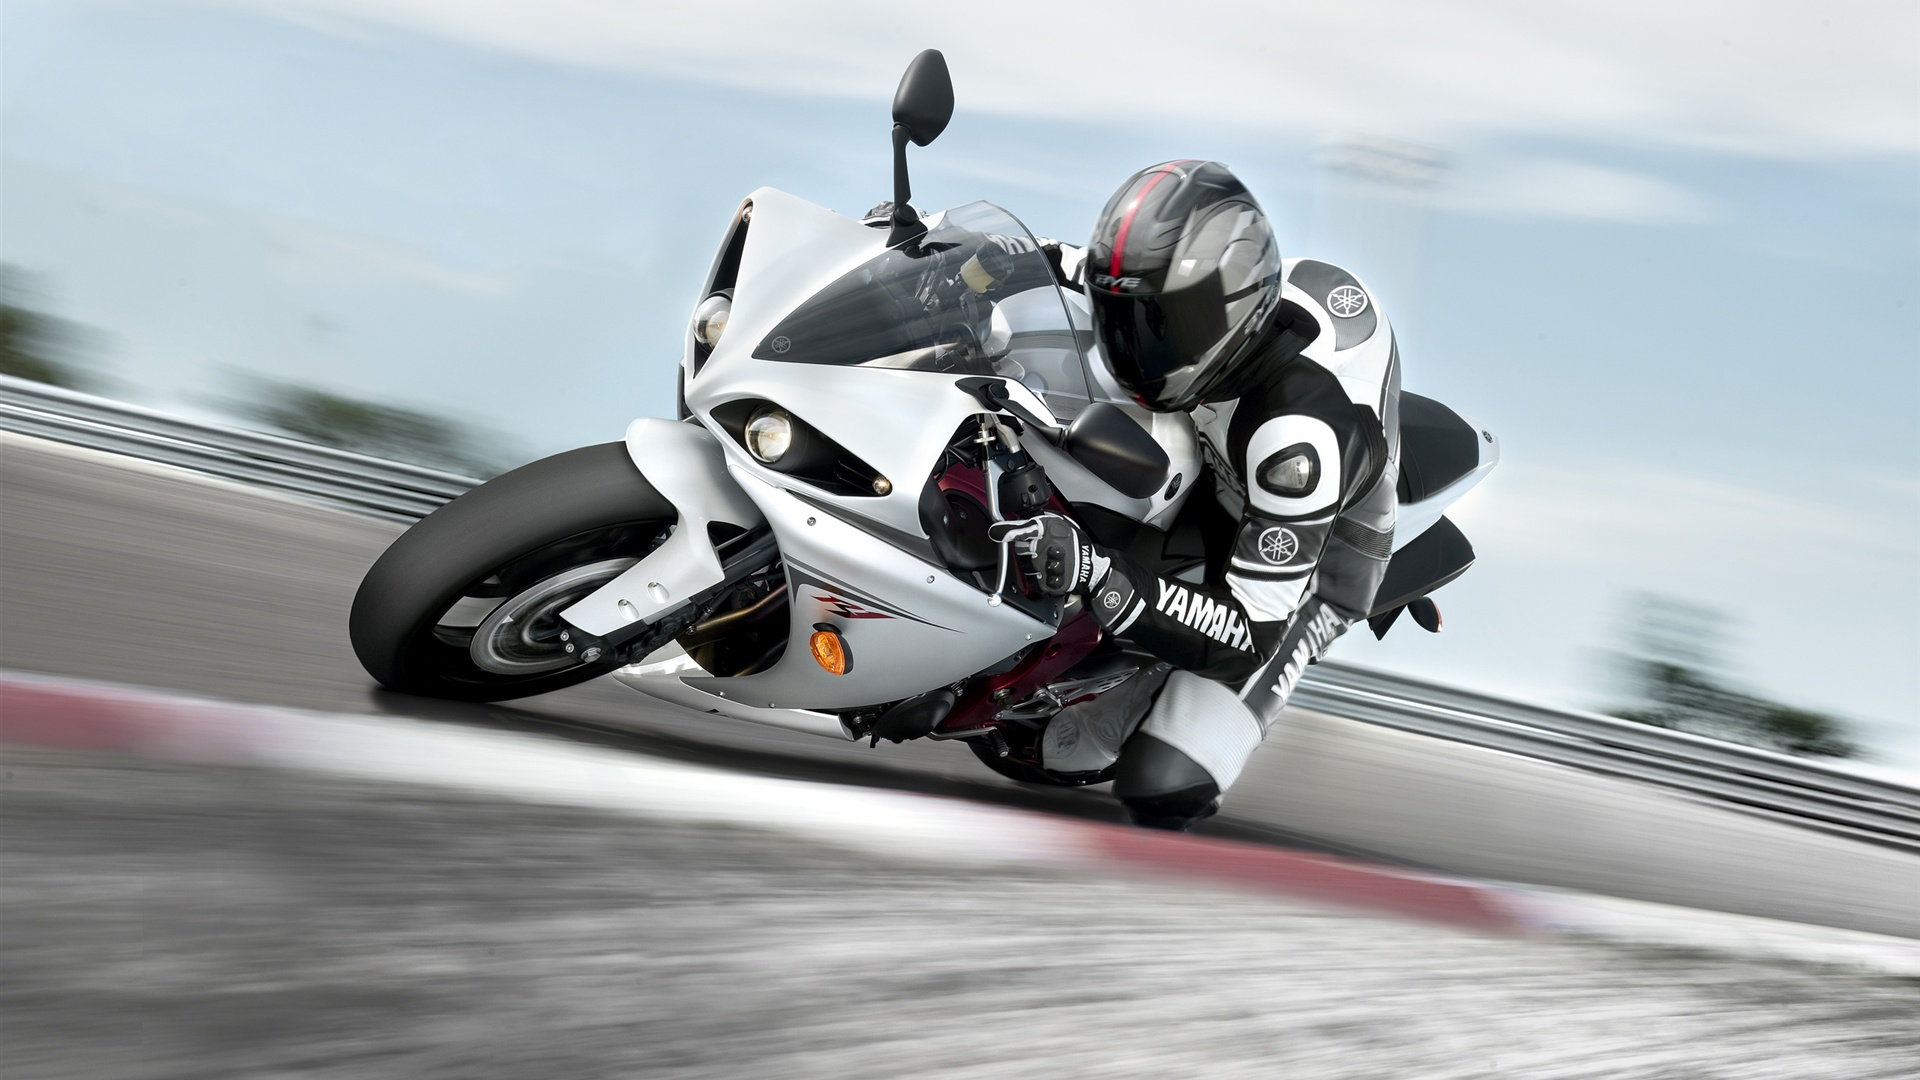 motorcycle wallpaper download